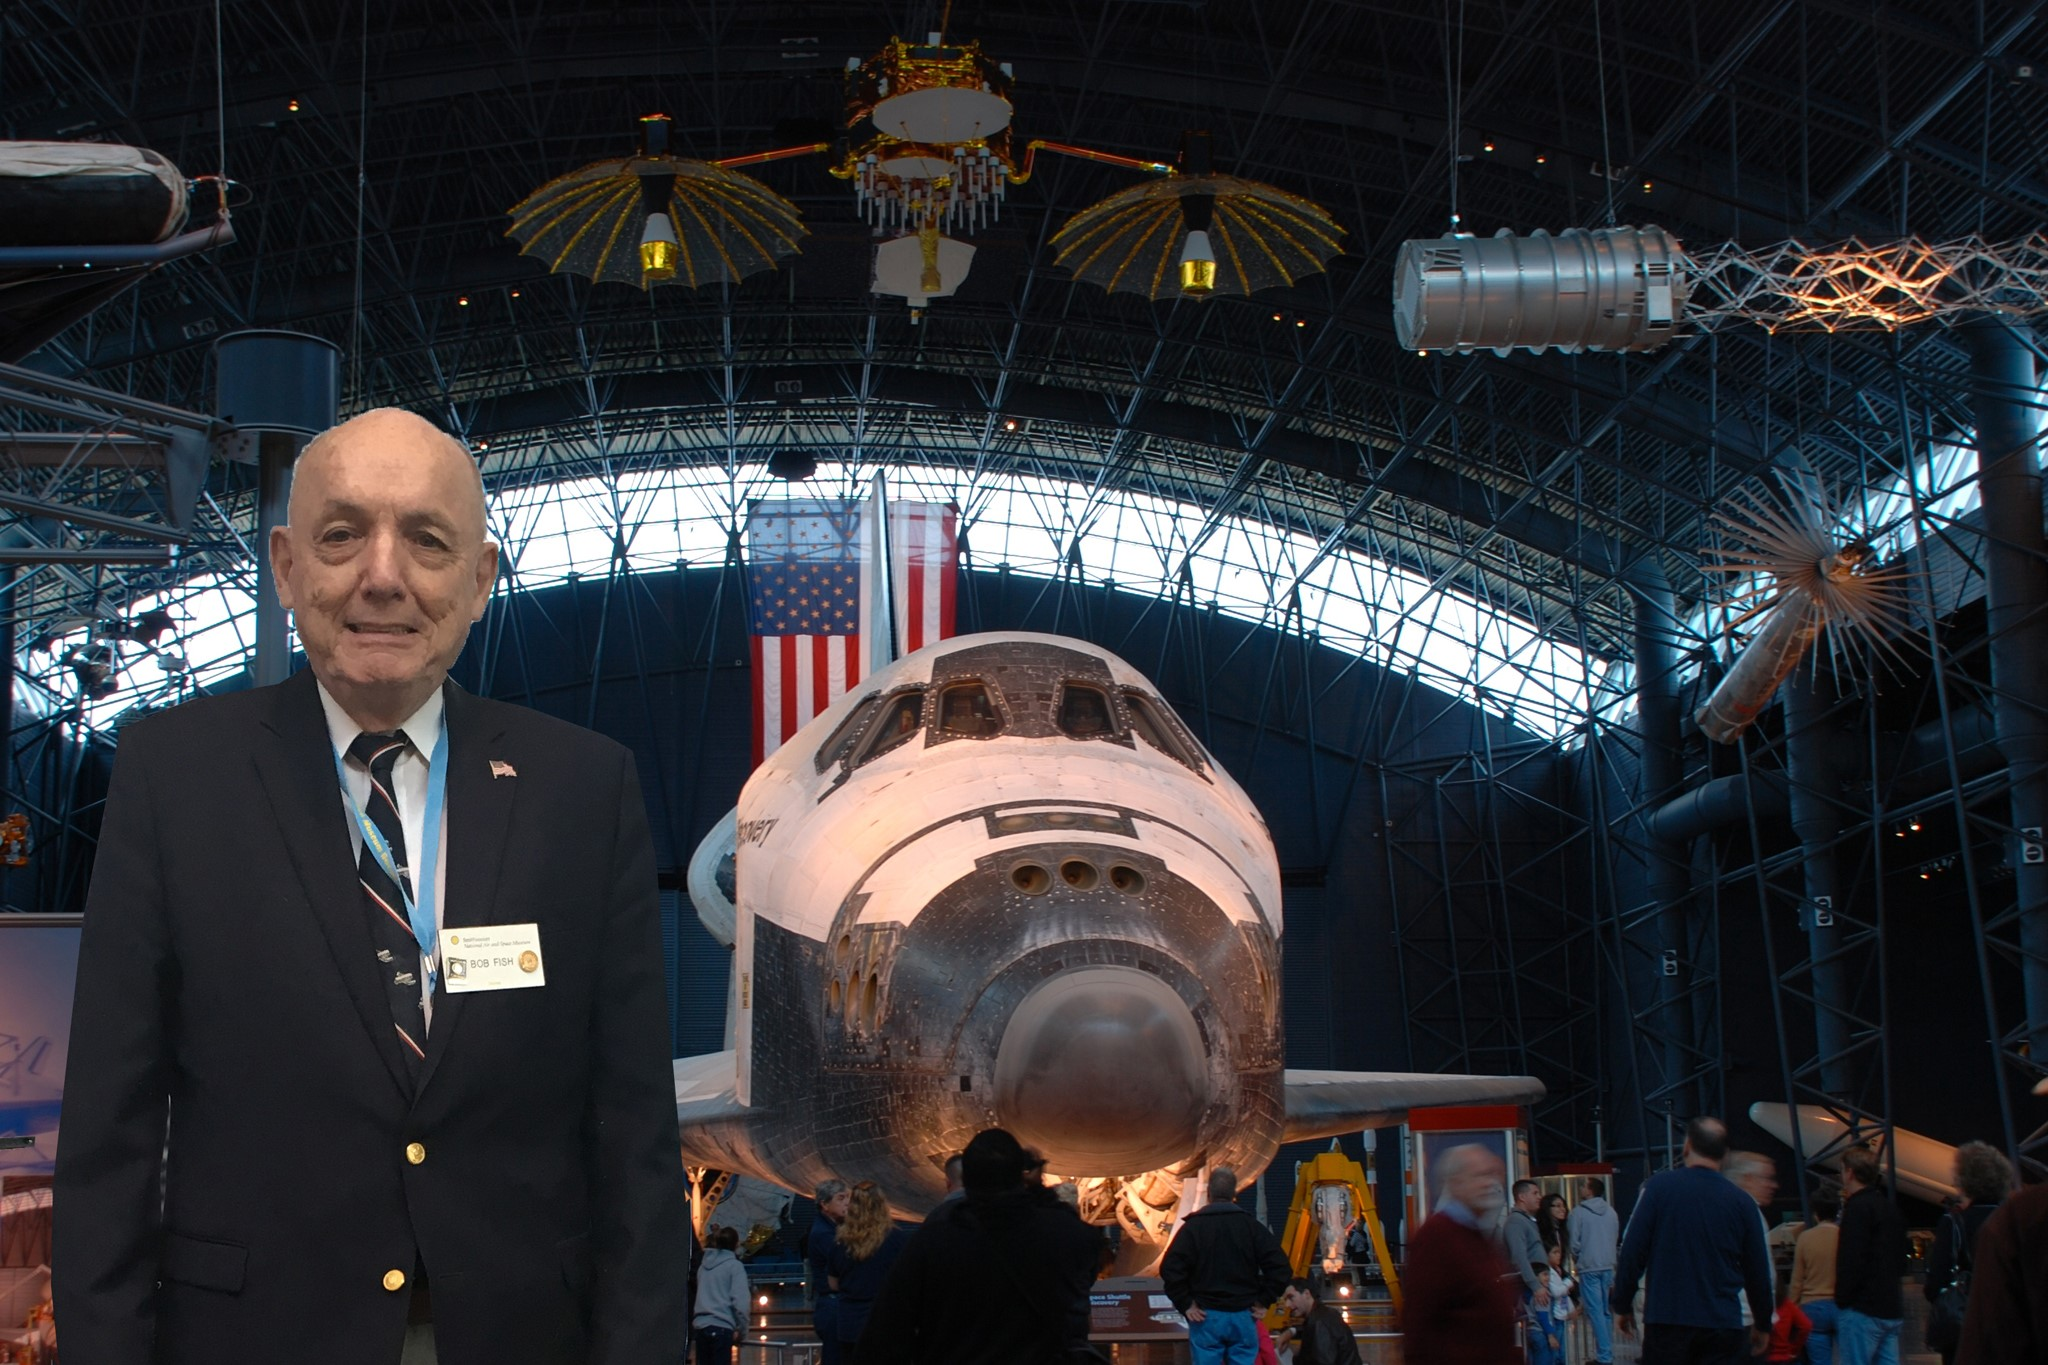 Fish poses in front of space shuttle